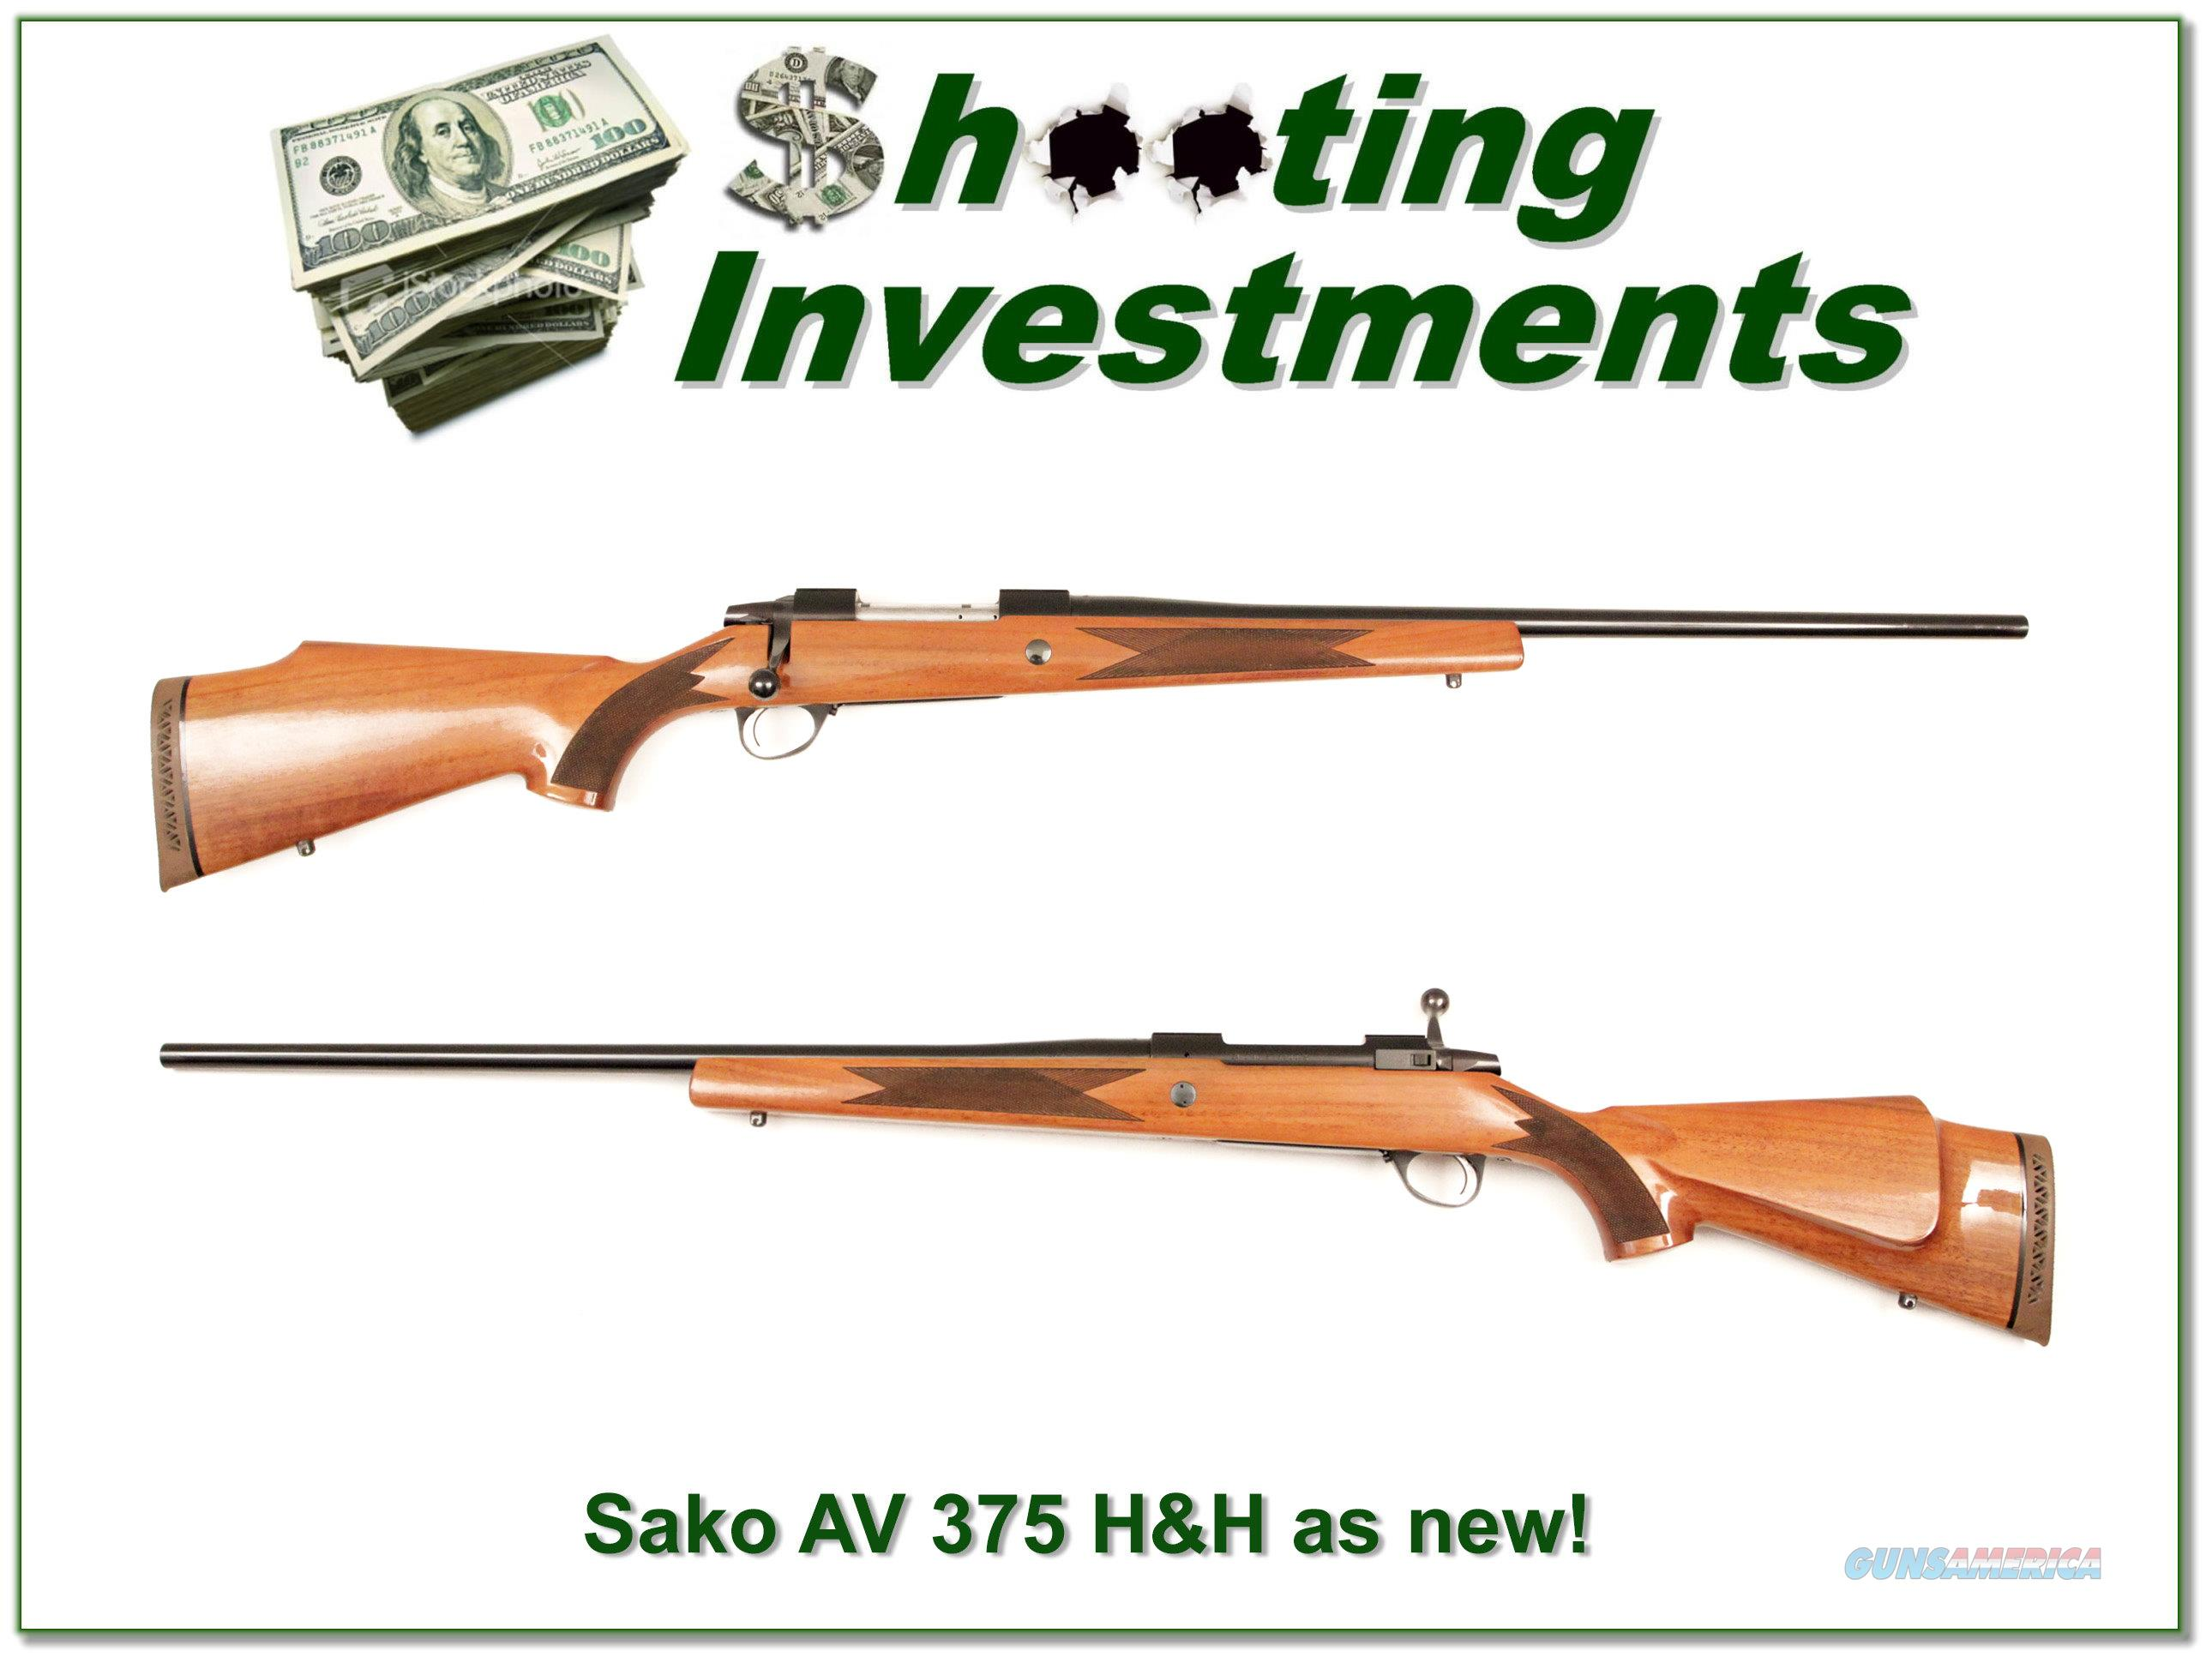 Sako AV Finnbear 375 H&H as new!  Guns > Rifles > Sako Rifles > Other Bolt Action